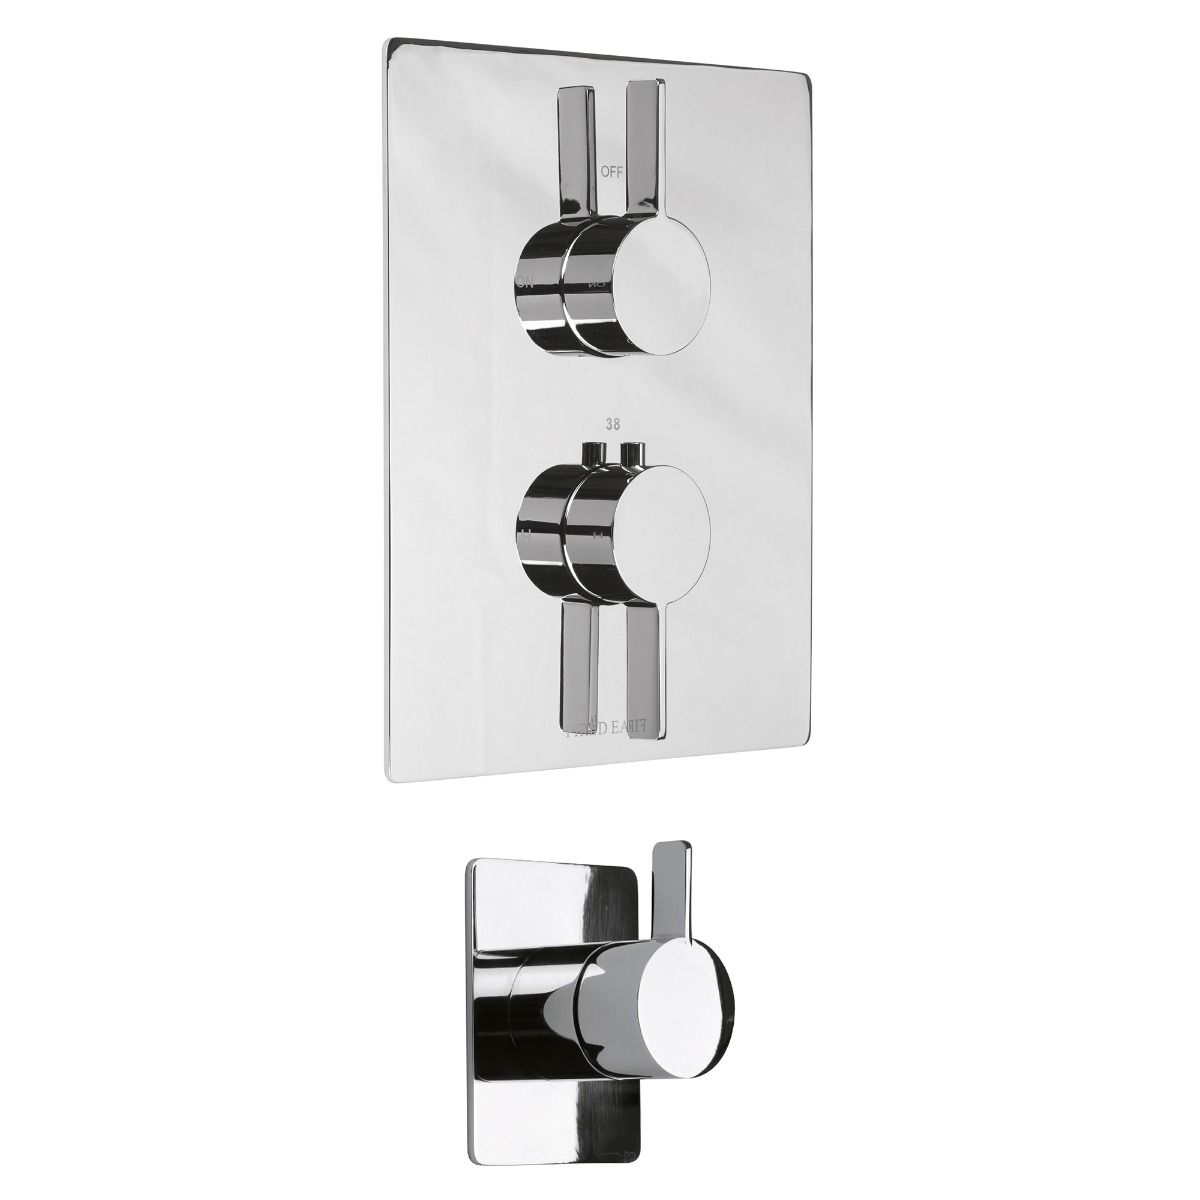 Logic Concealed Dual Control Shower with Diverter